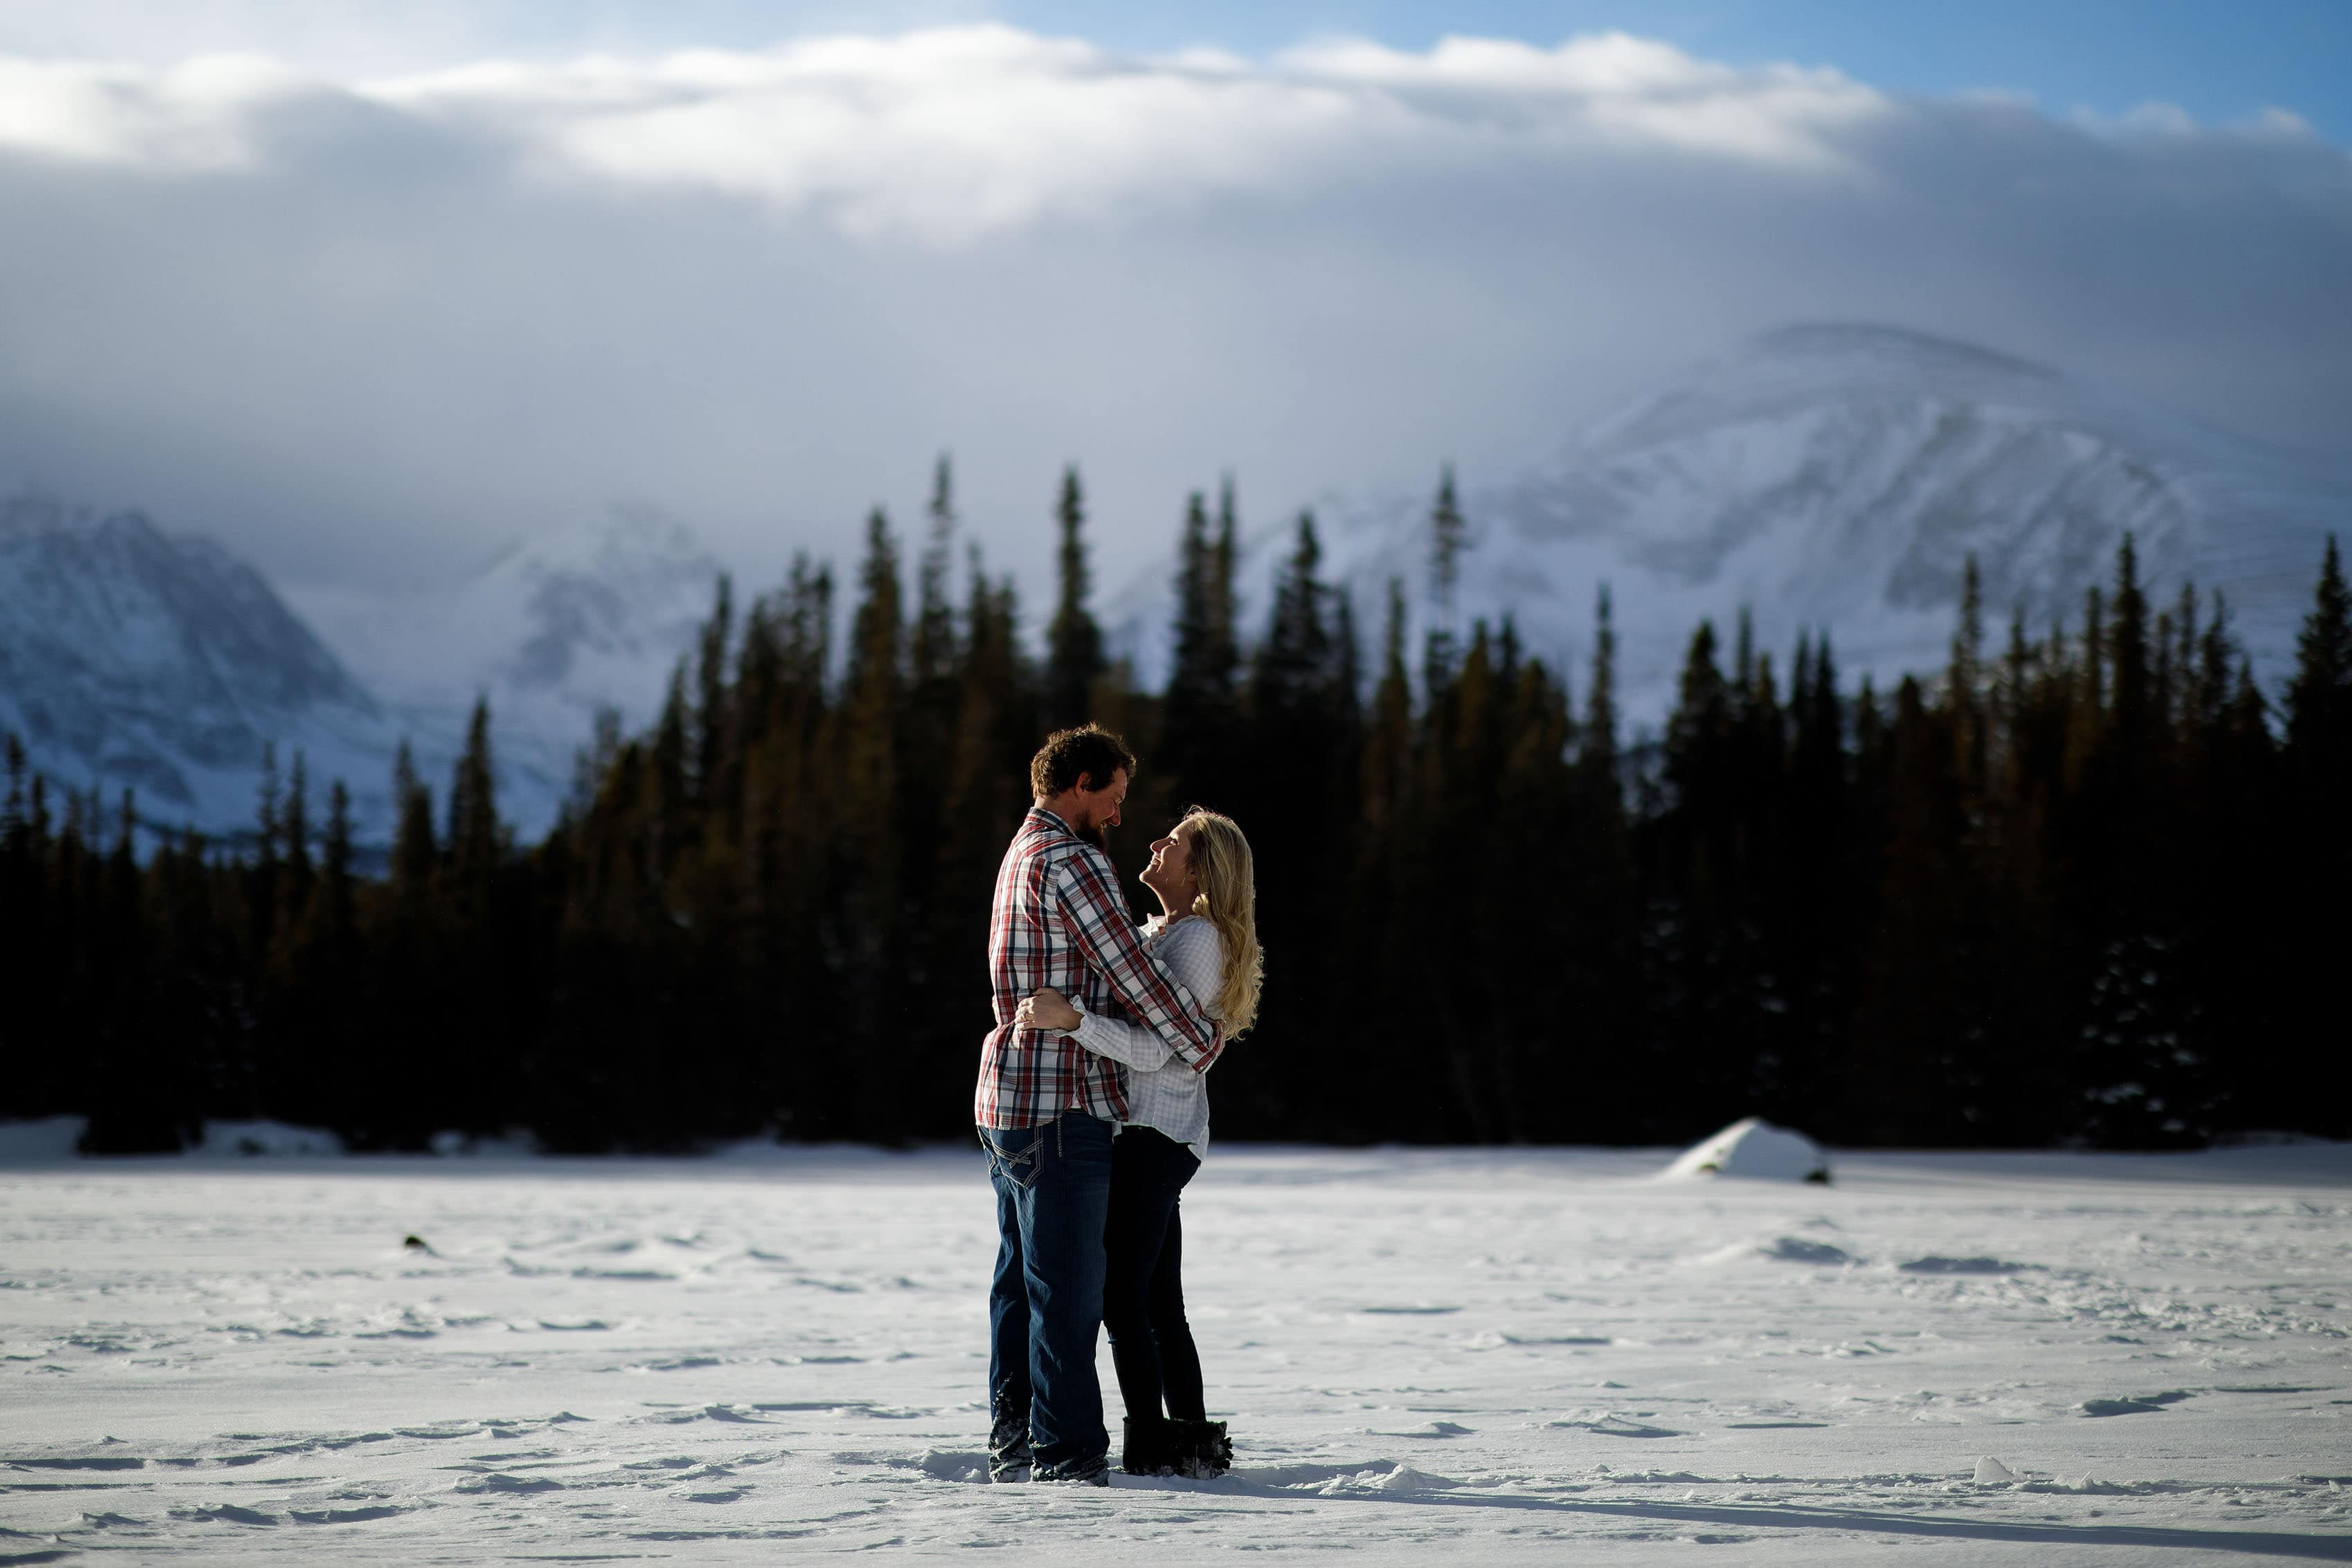 Aaron and Meaghan ebbrace during their winter Brainard Lake Engagement session in January